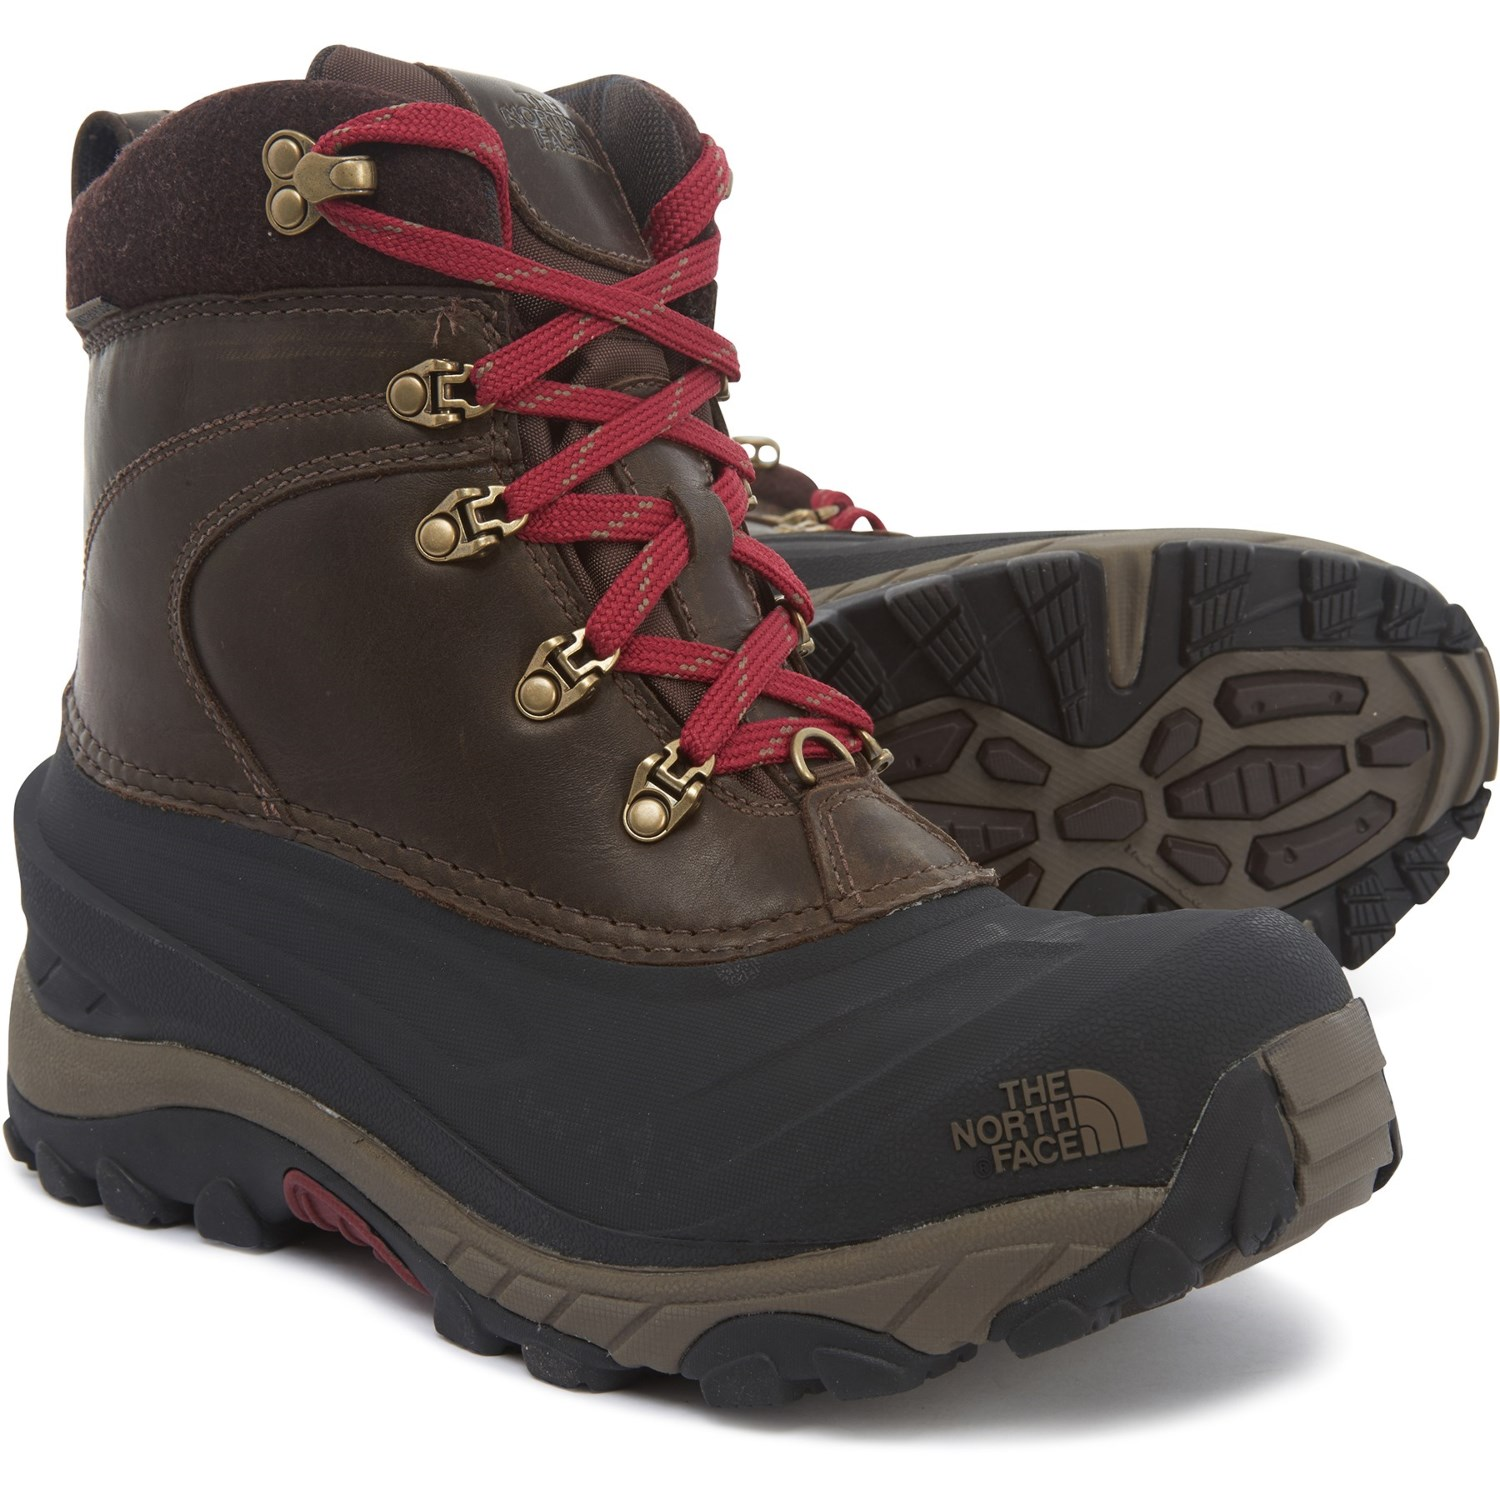 4036a5120 The North Face Chilkat II Luxe Boots - Waterproof, Insulated (For Men)